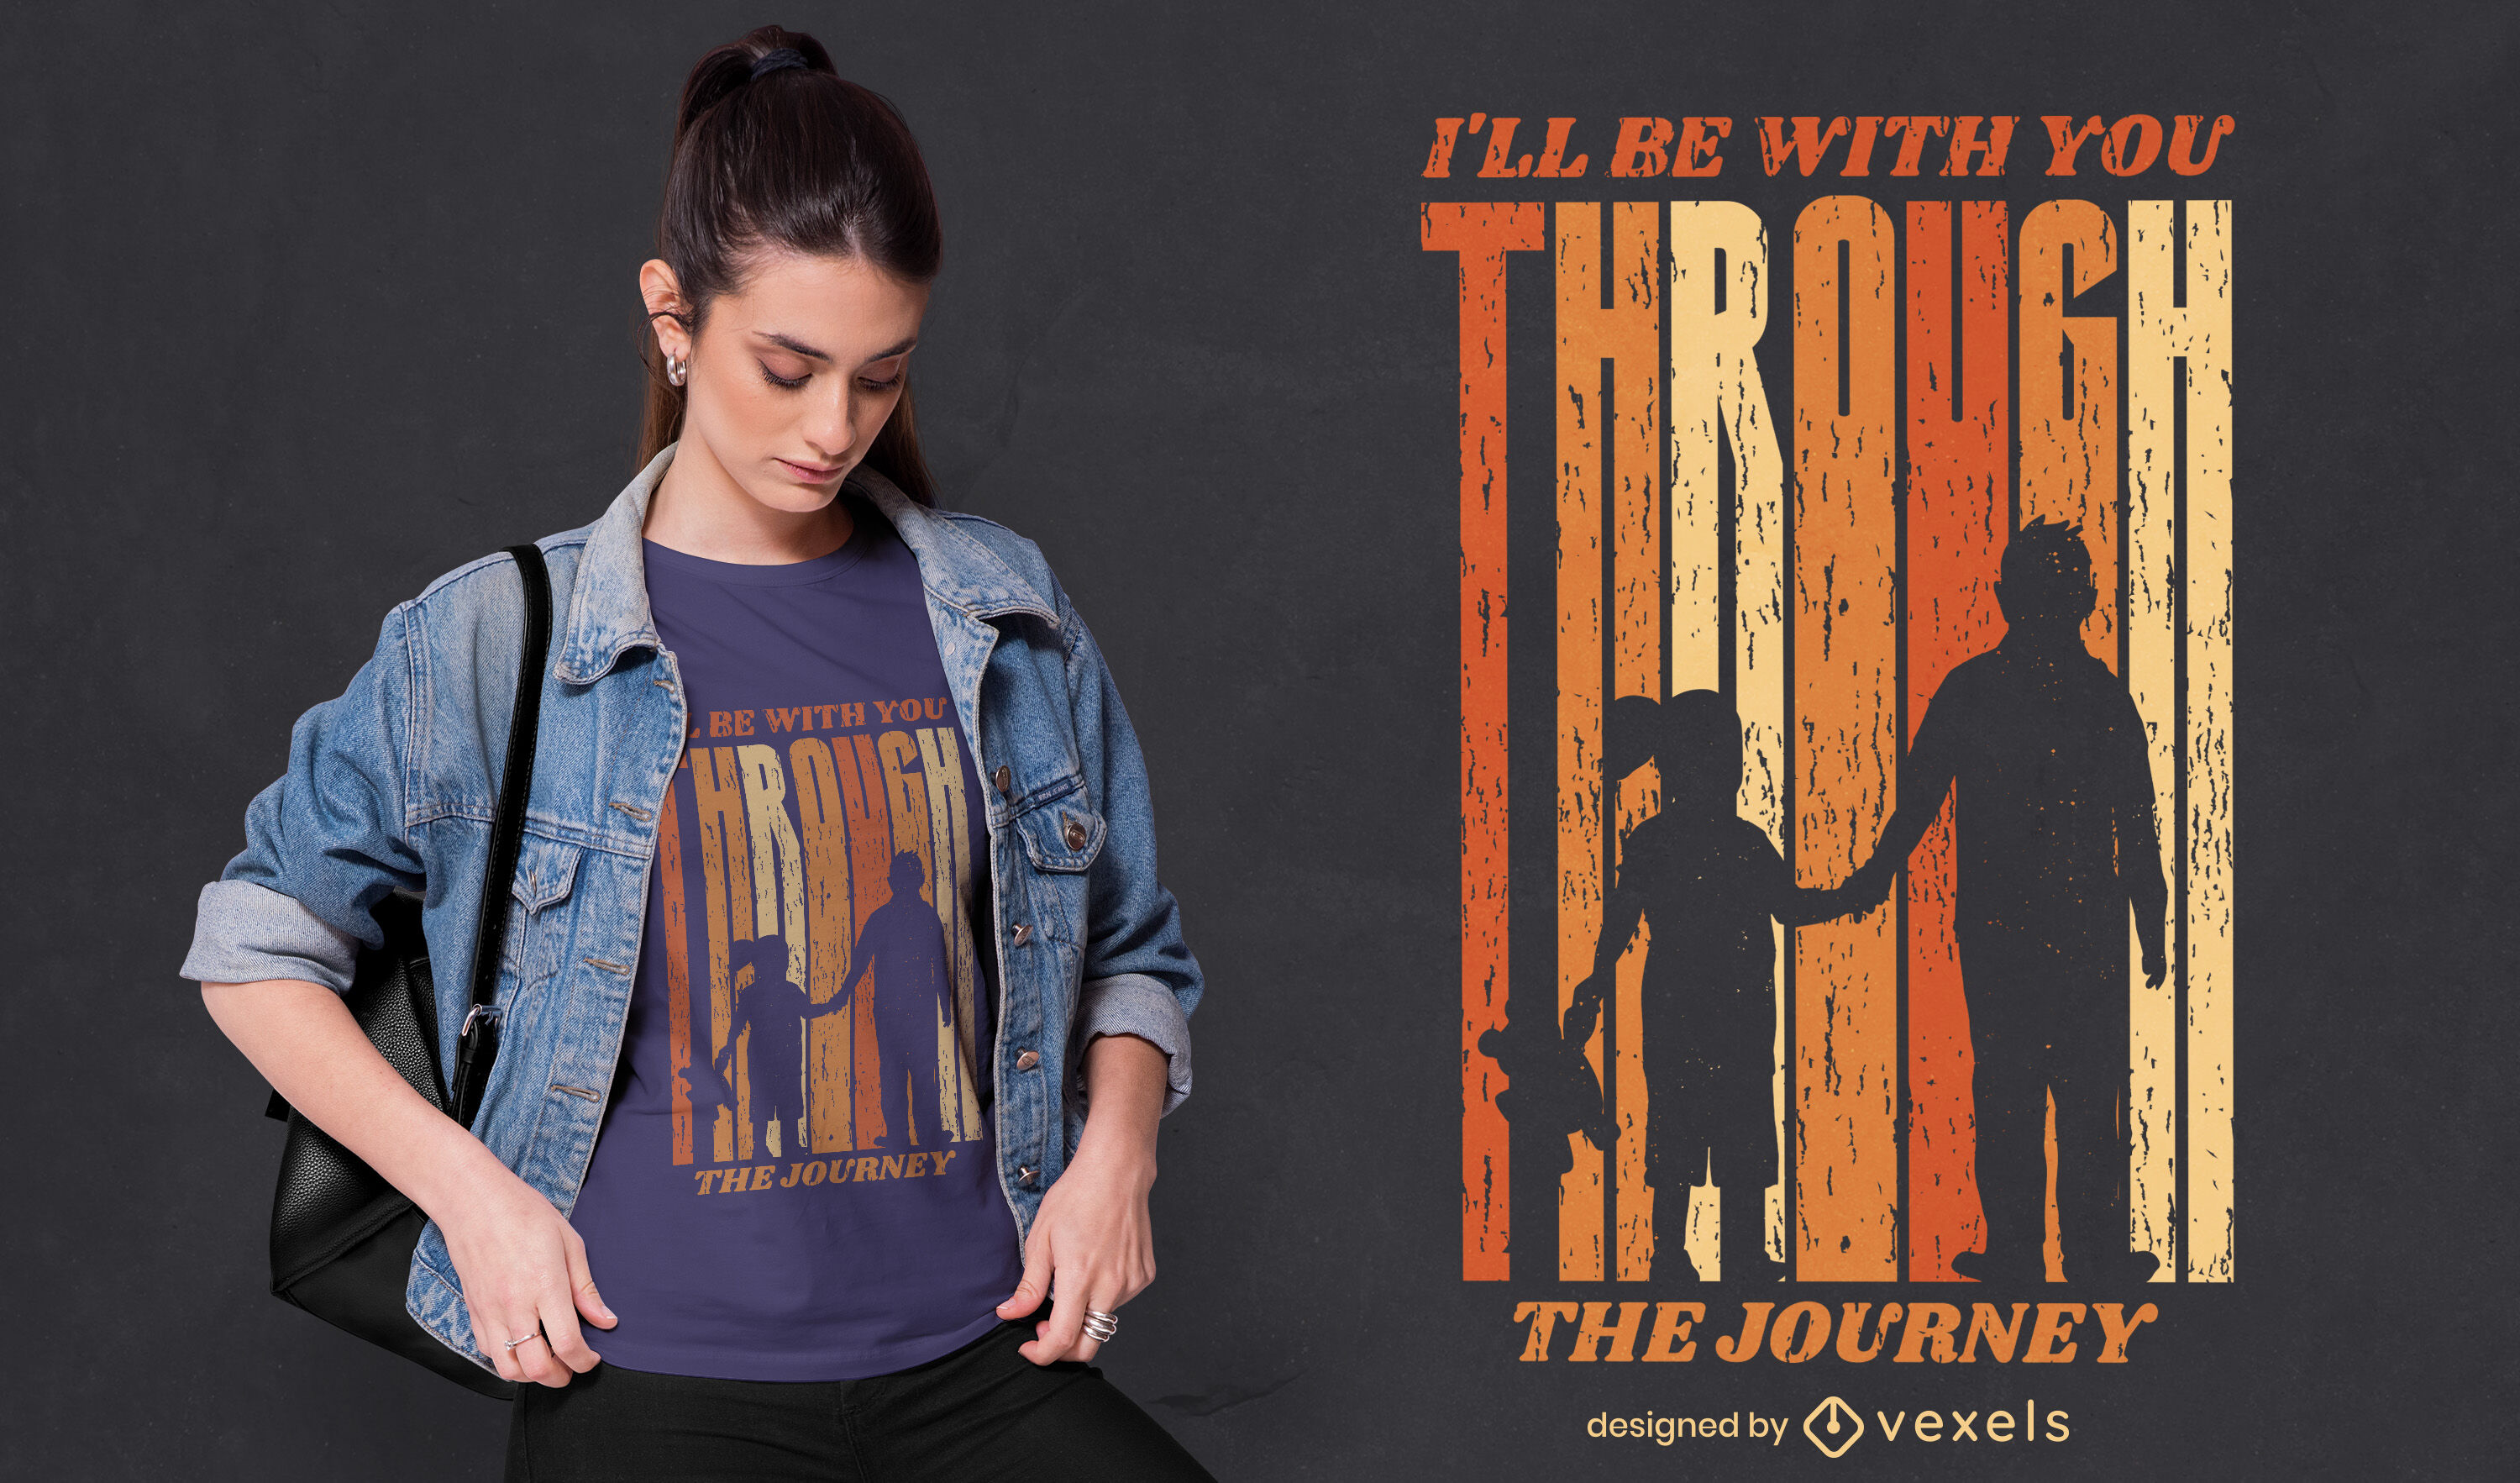 Father and daughter journey t-shirt design